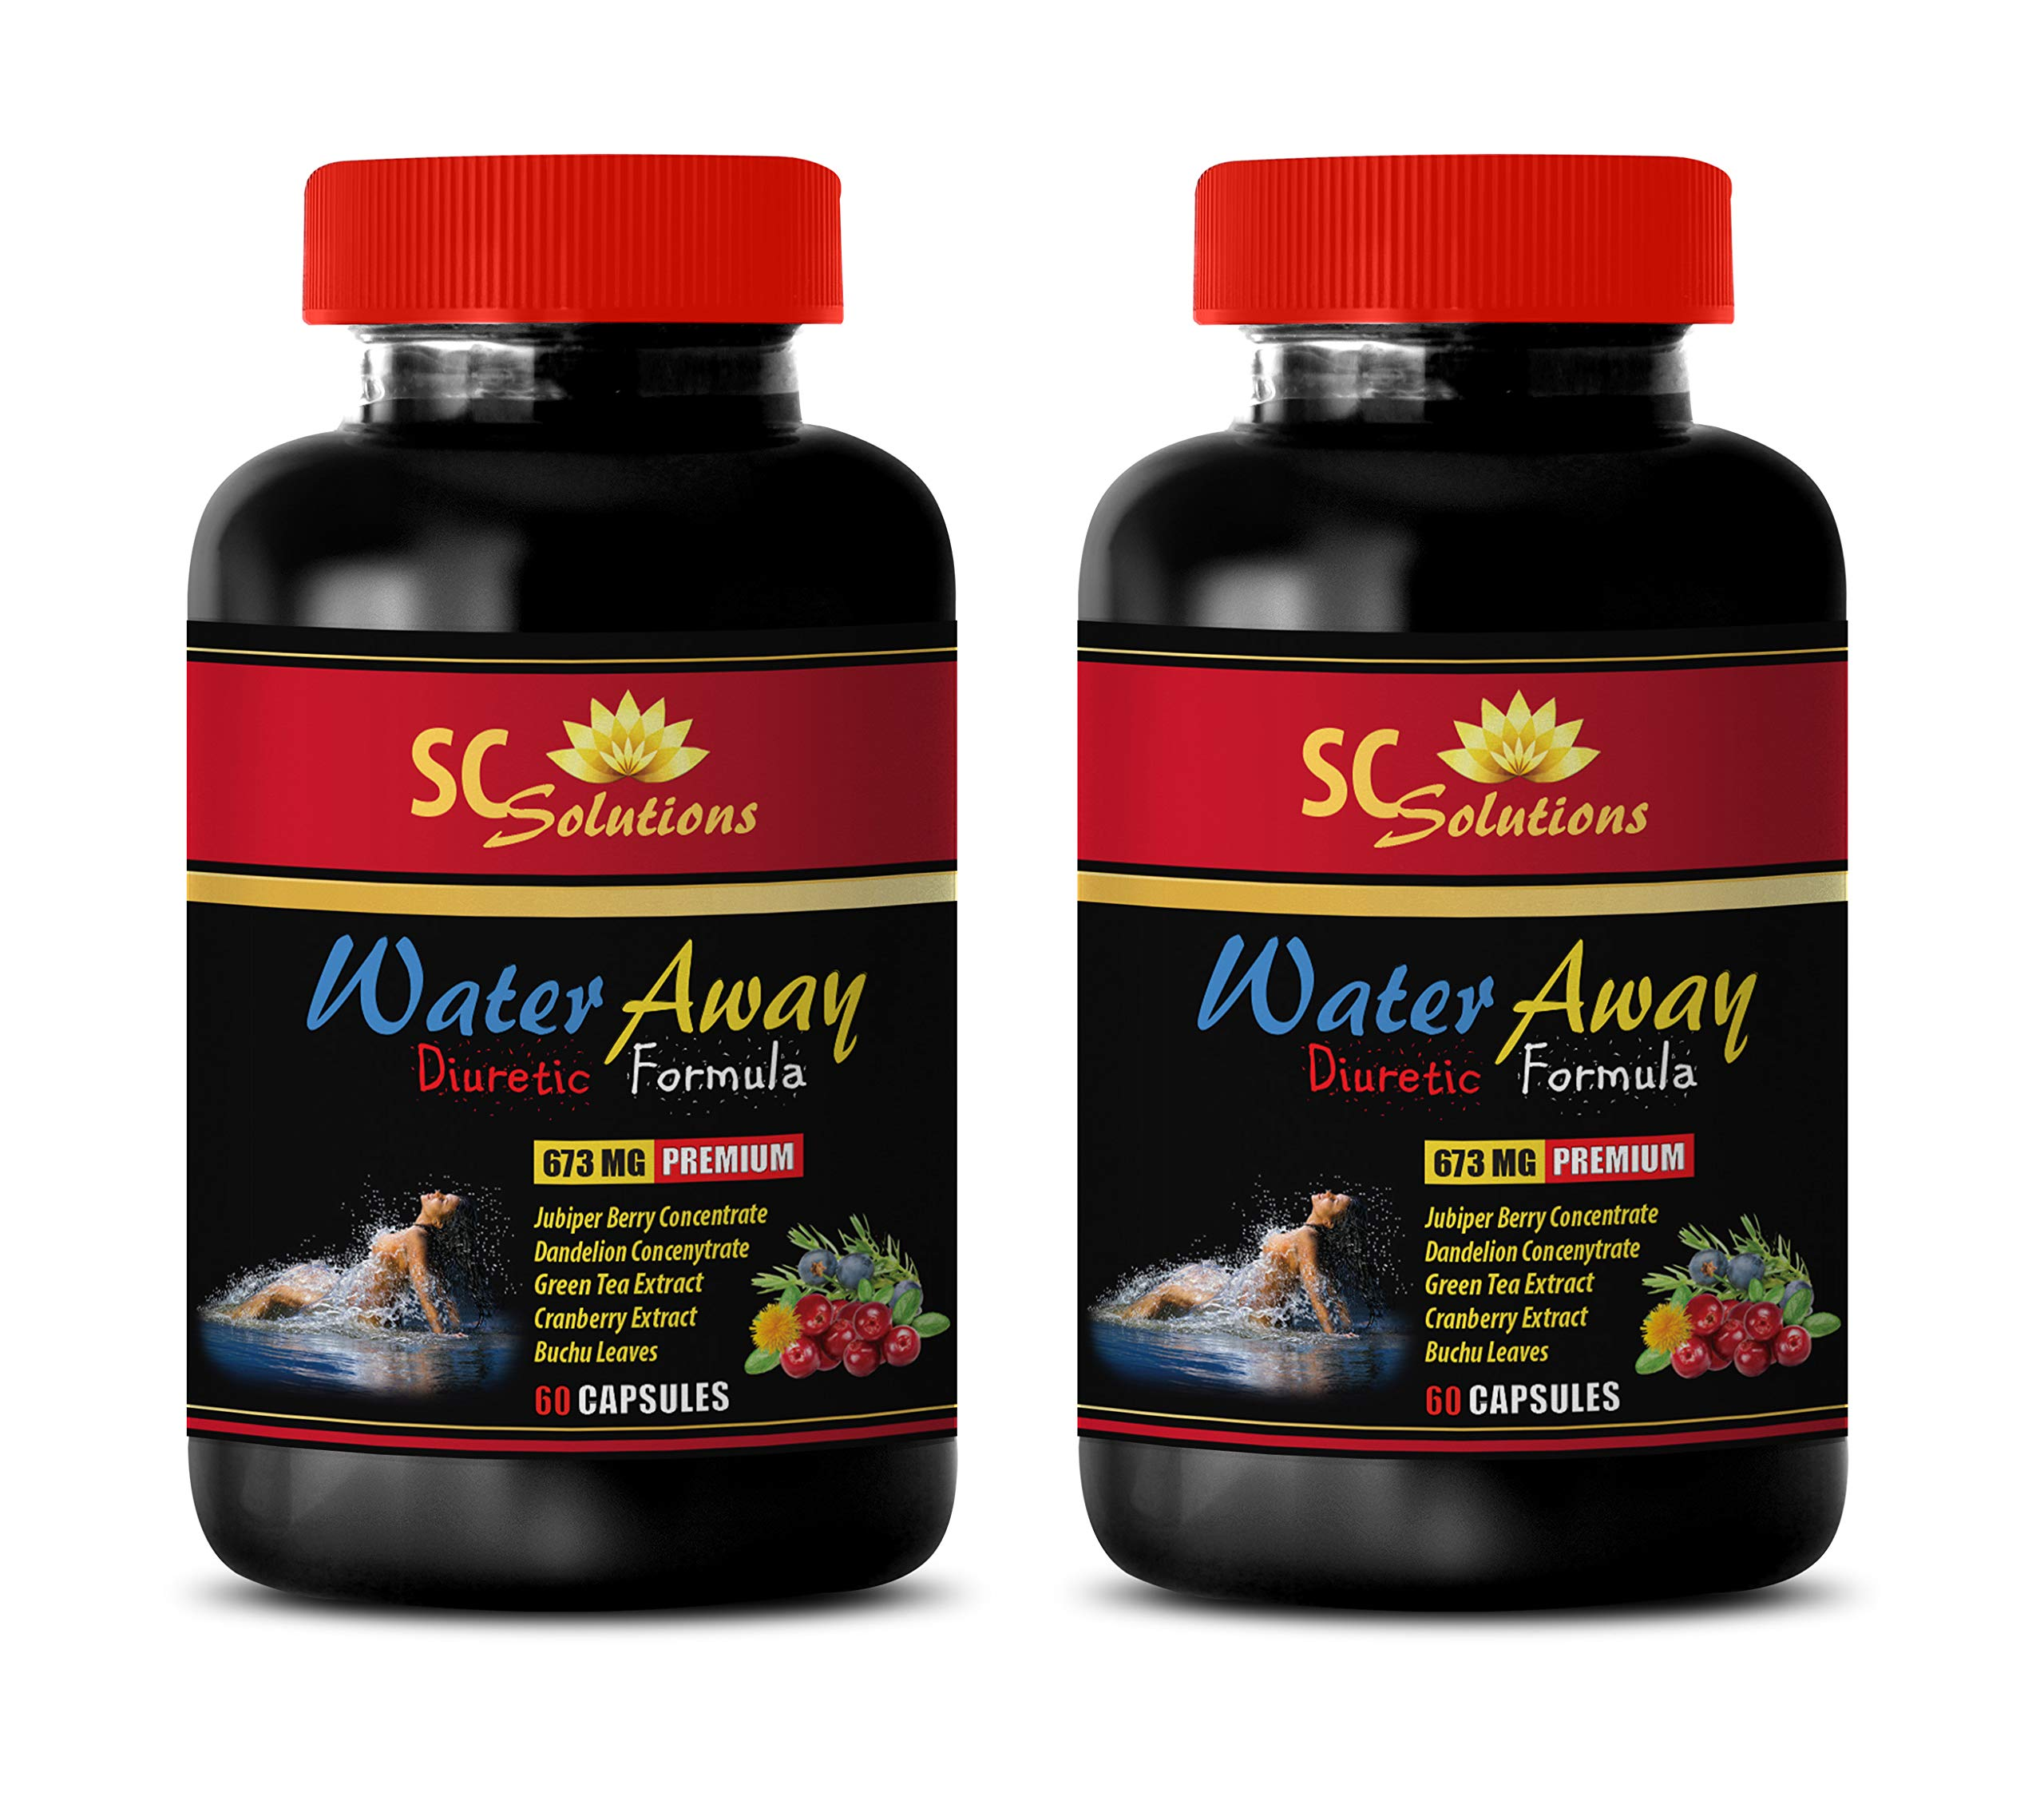 Fat Loss - Water Away Pills Natural Formula 700MG - Potassium Chloride - 2 Bottle (120 Capsules) by Skin Care Solution (Image #1)